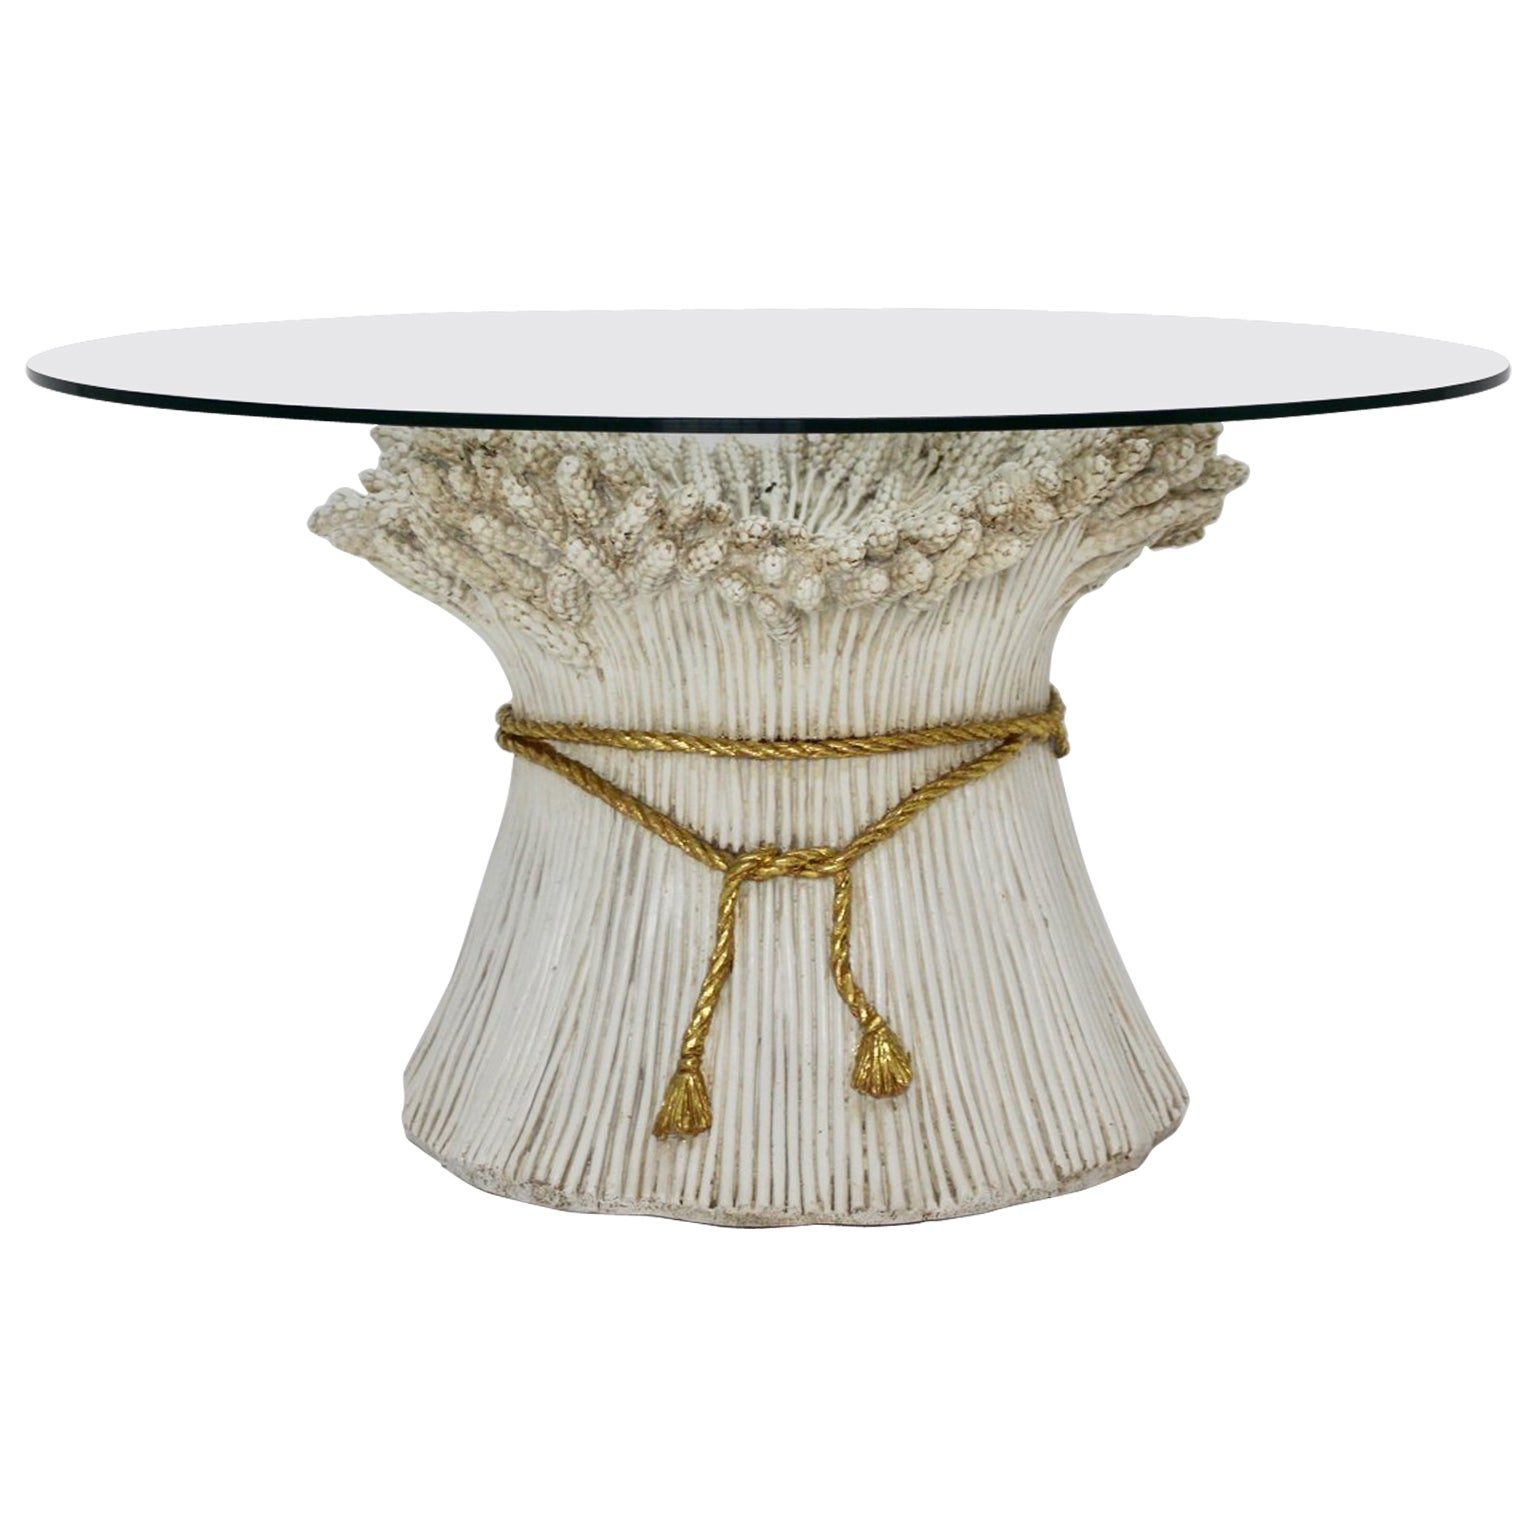 White and Gold Hollywood Regency Sheaf of Wheat Coffee Table, 1970s, Italy